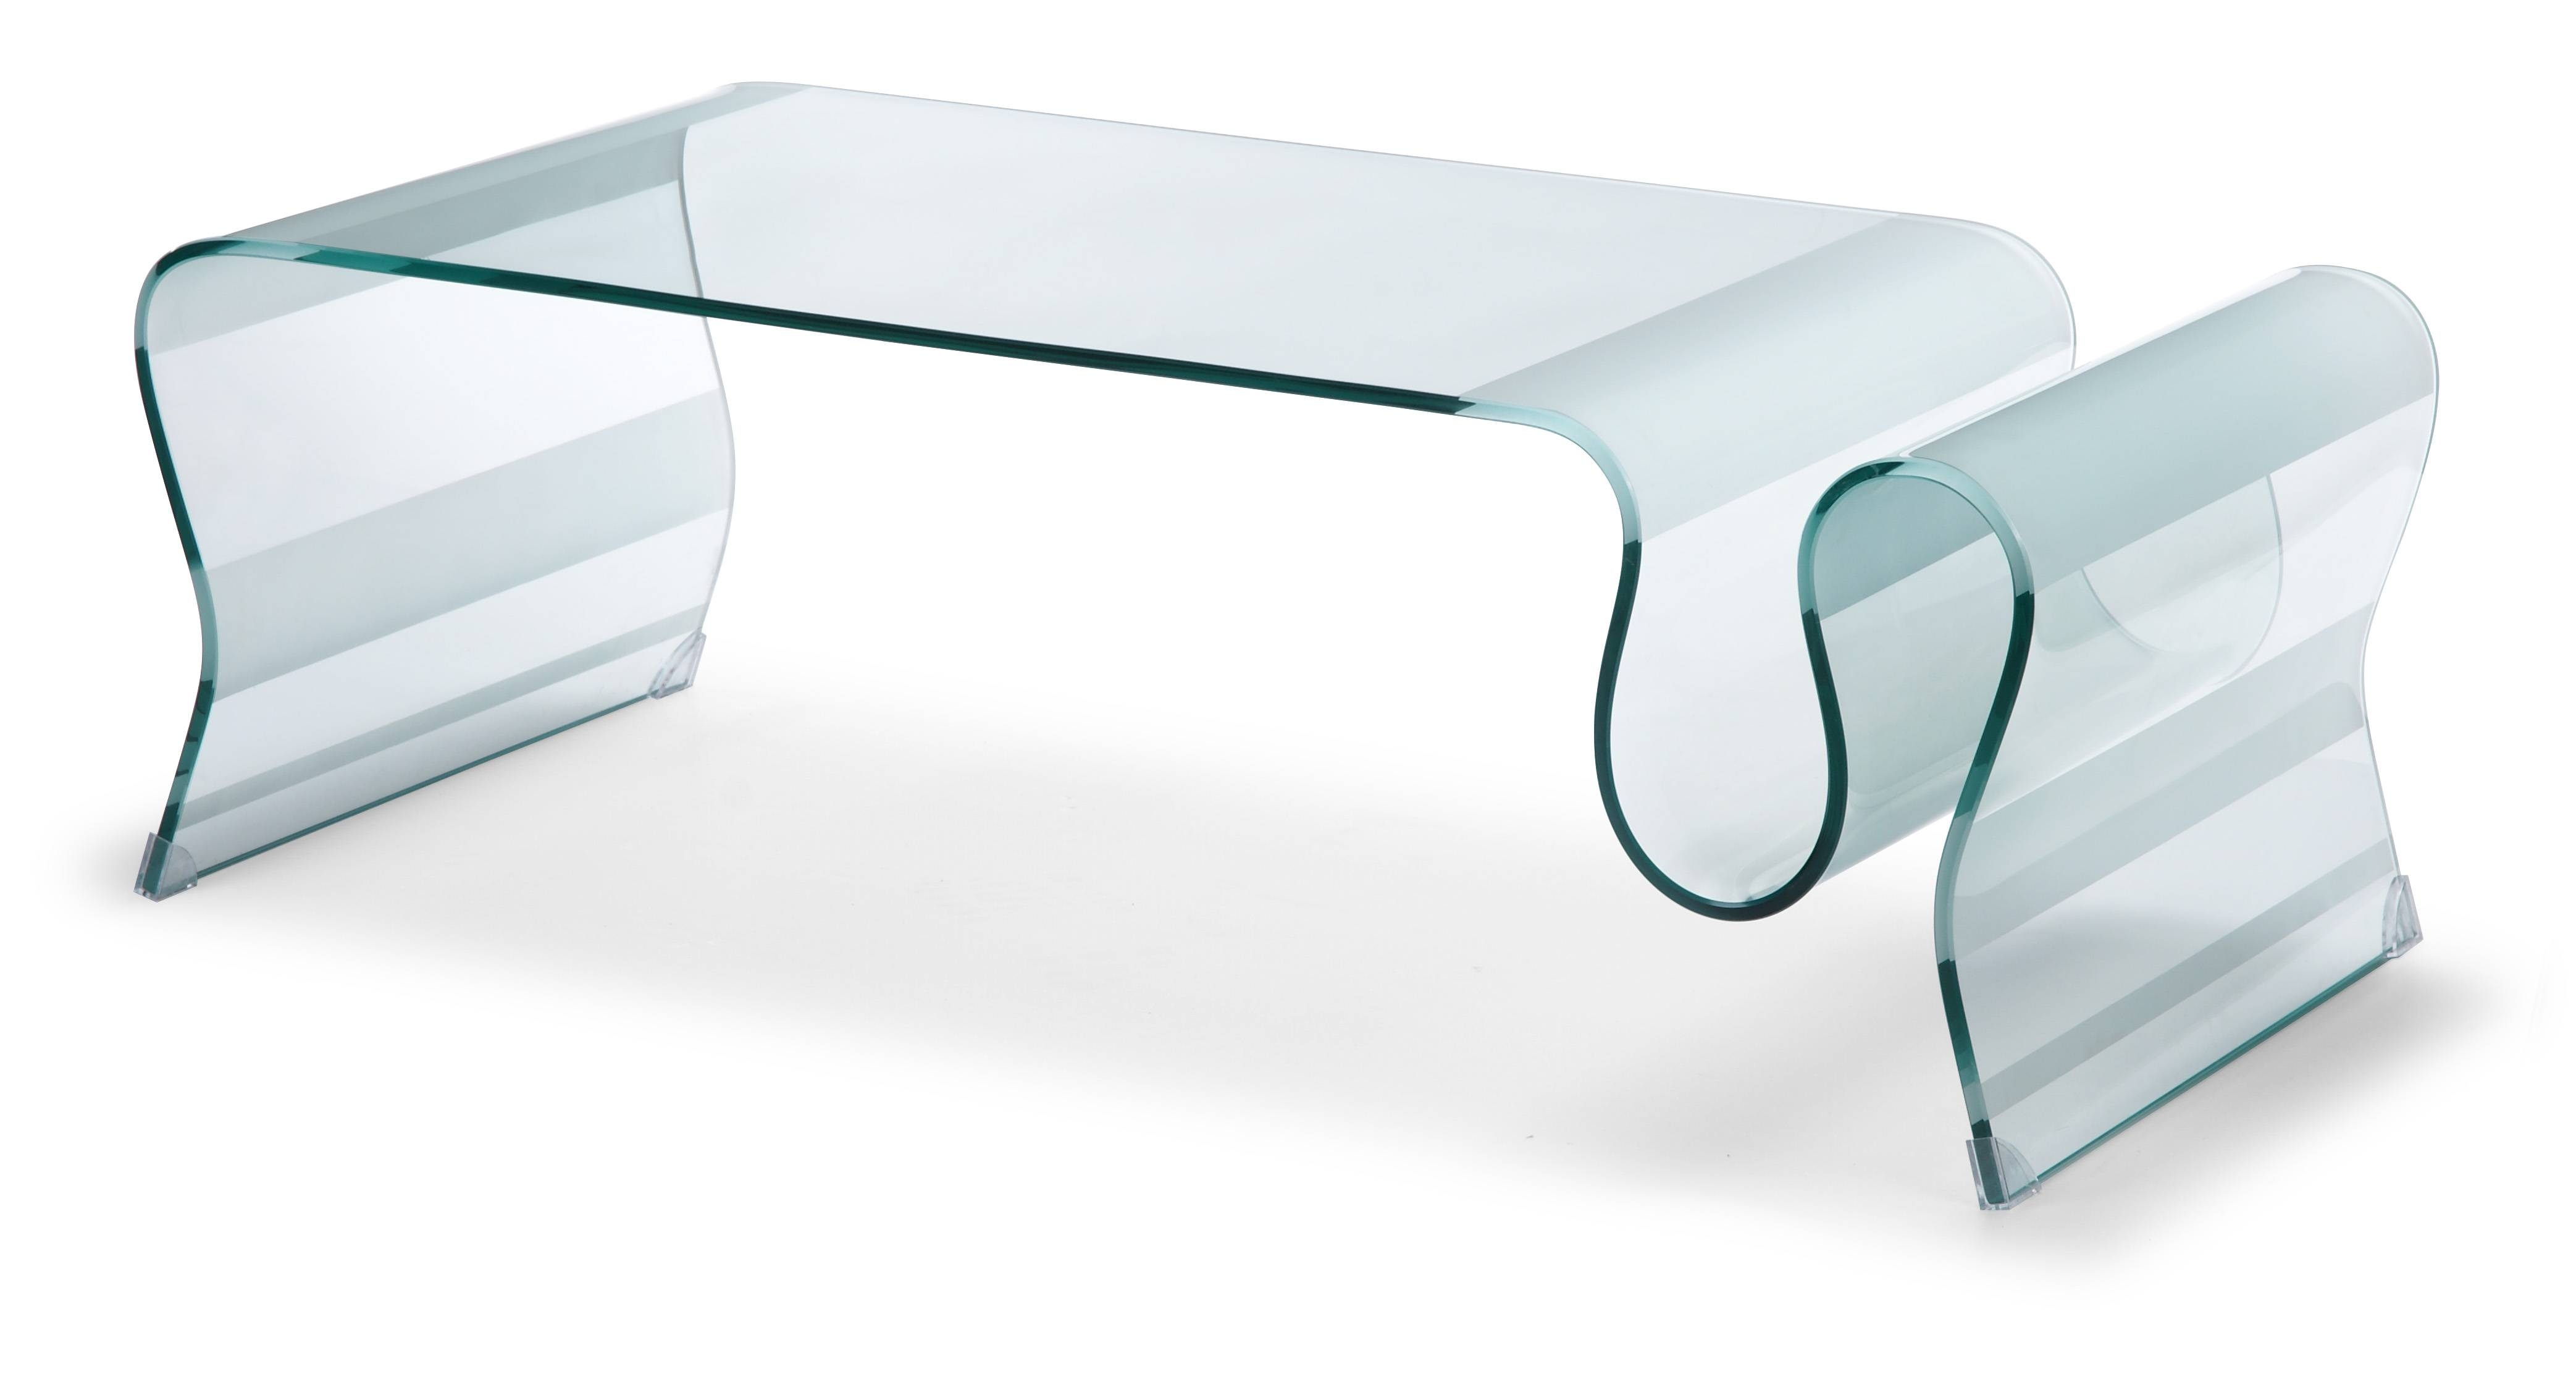 Coffee Table : Sony Dsc Design Collection Ideas Tempered Glass Inside Retro Smoked Glass Coffee Tables (View 15 of 30)